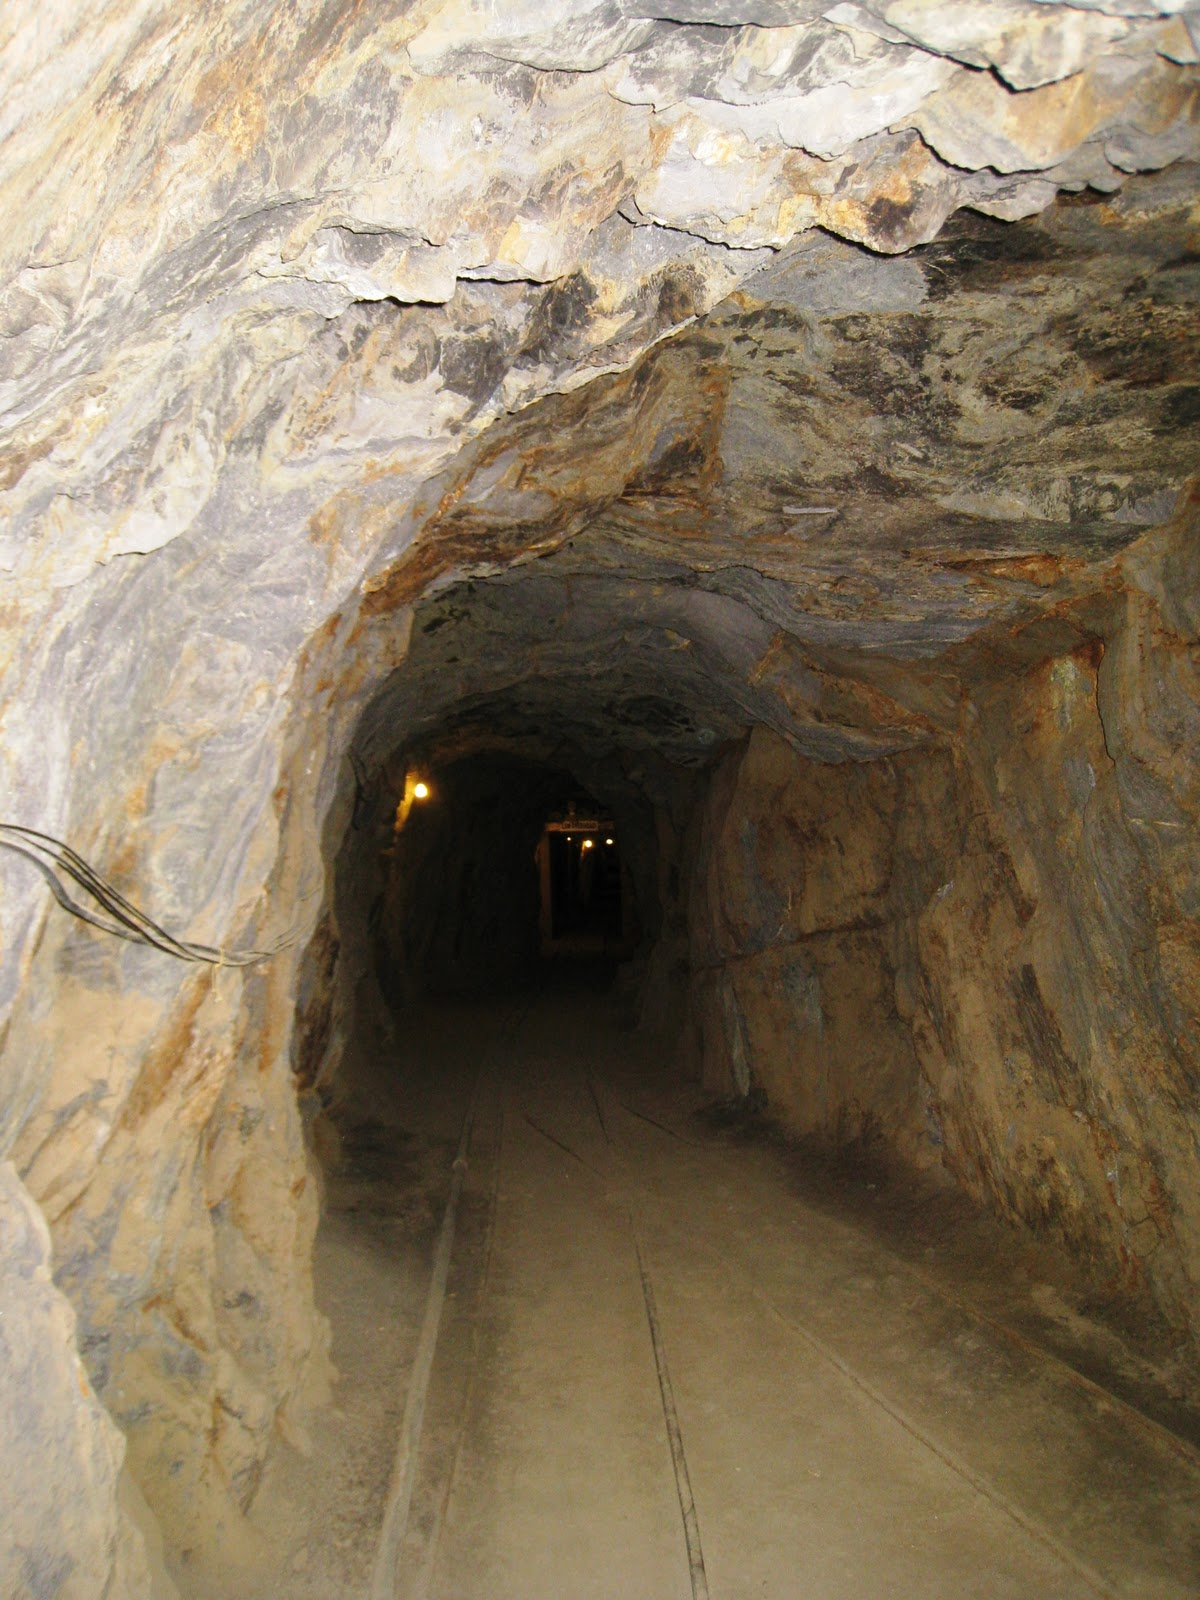 mining group gold organization Gold prospectors association of america, temecula, ca 27,033 likes 744 talking about this 105 were here the gpaa is the world's largest prospecting.